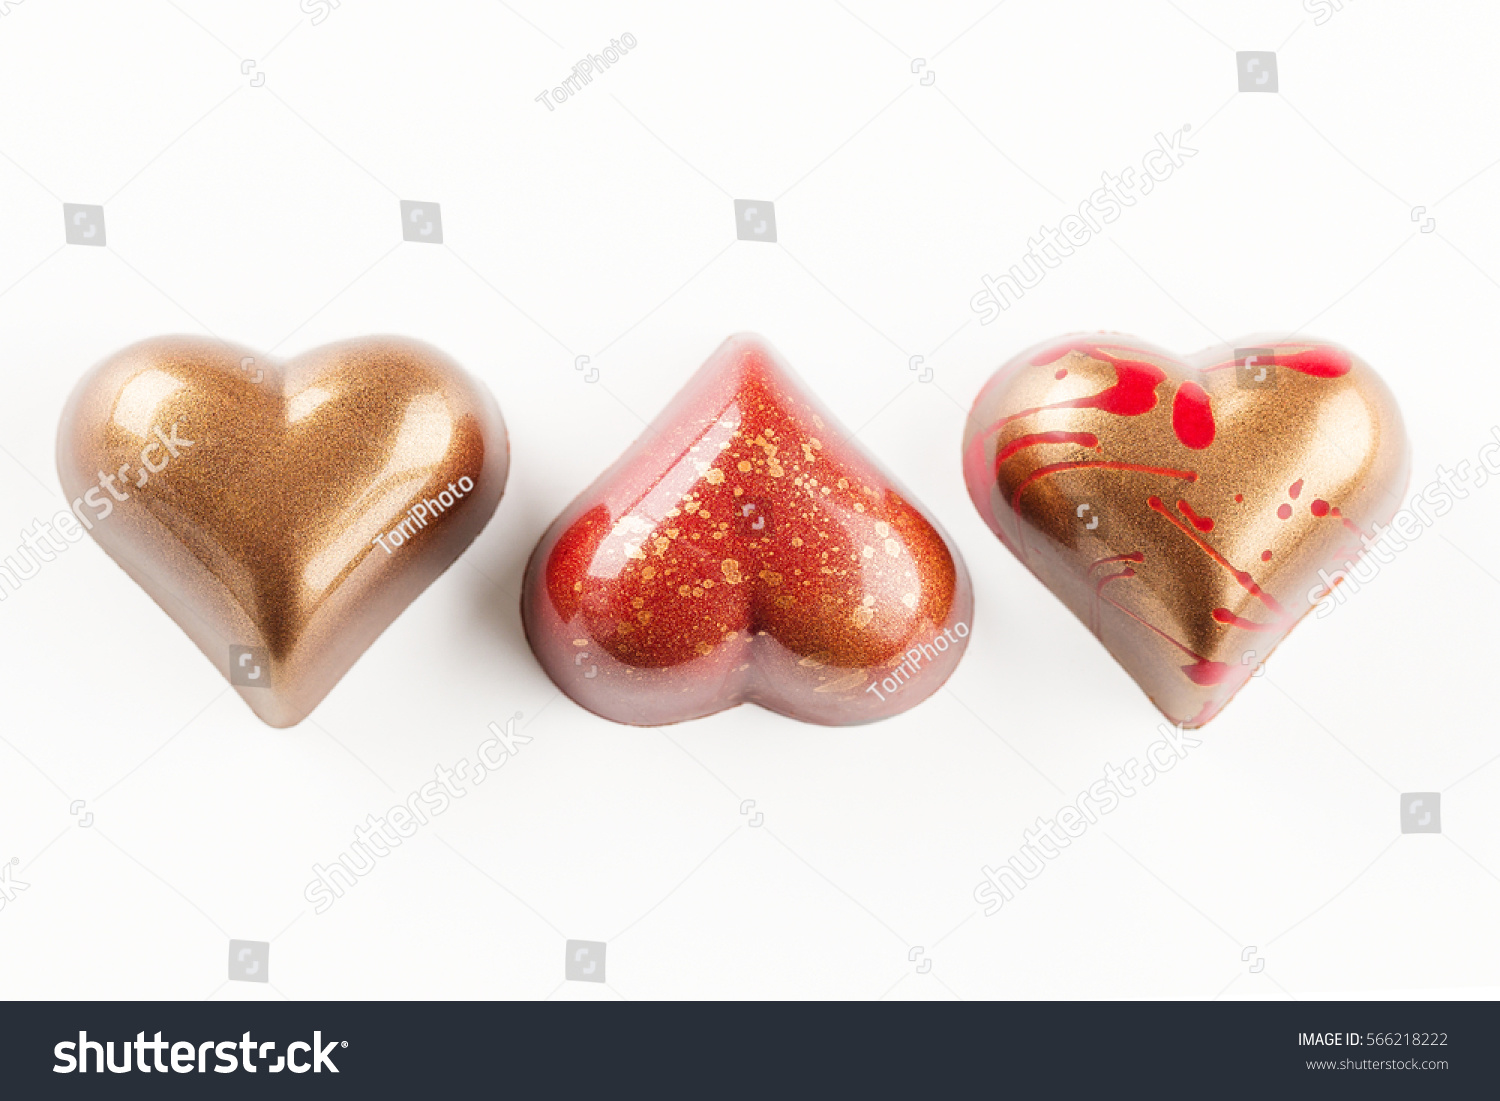 https://www.shutterstock.com/image-photo/red-gold-heart-shaped-handmade-candies-566218222